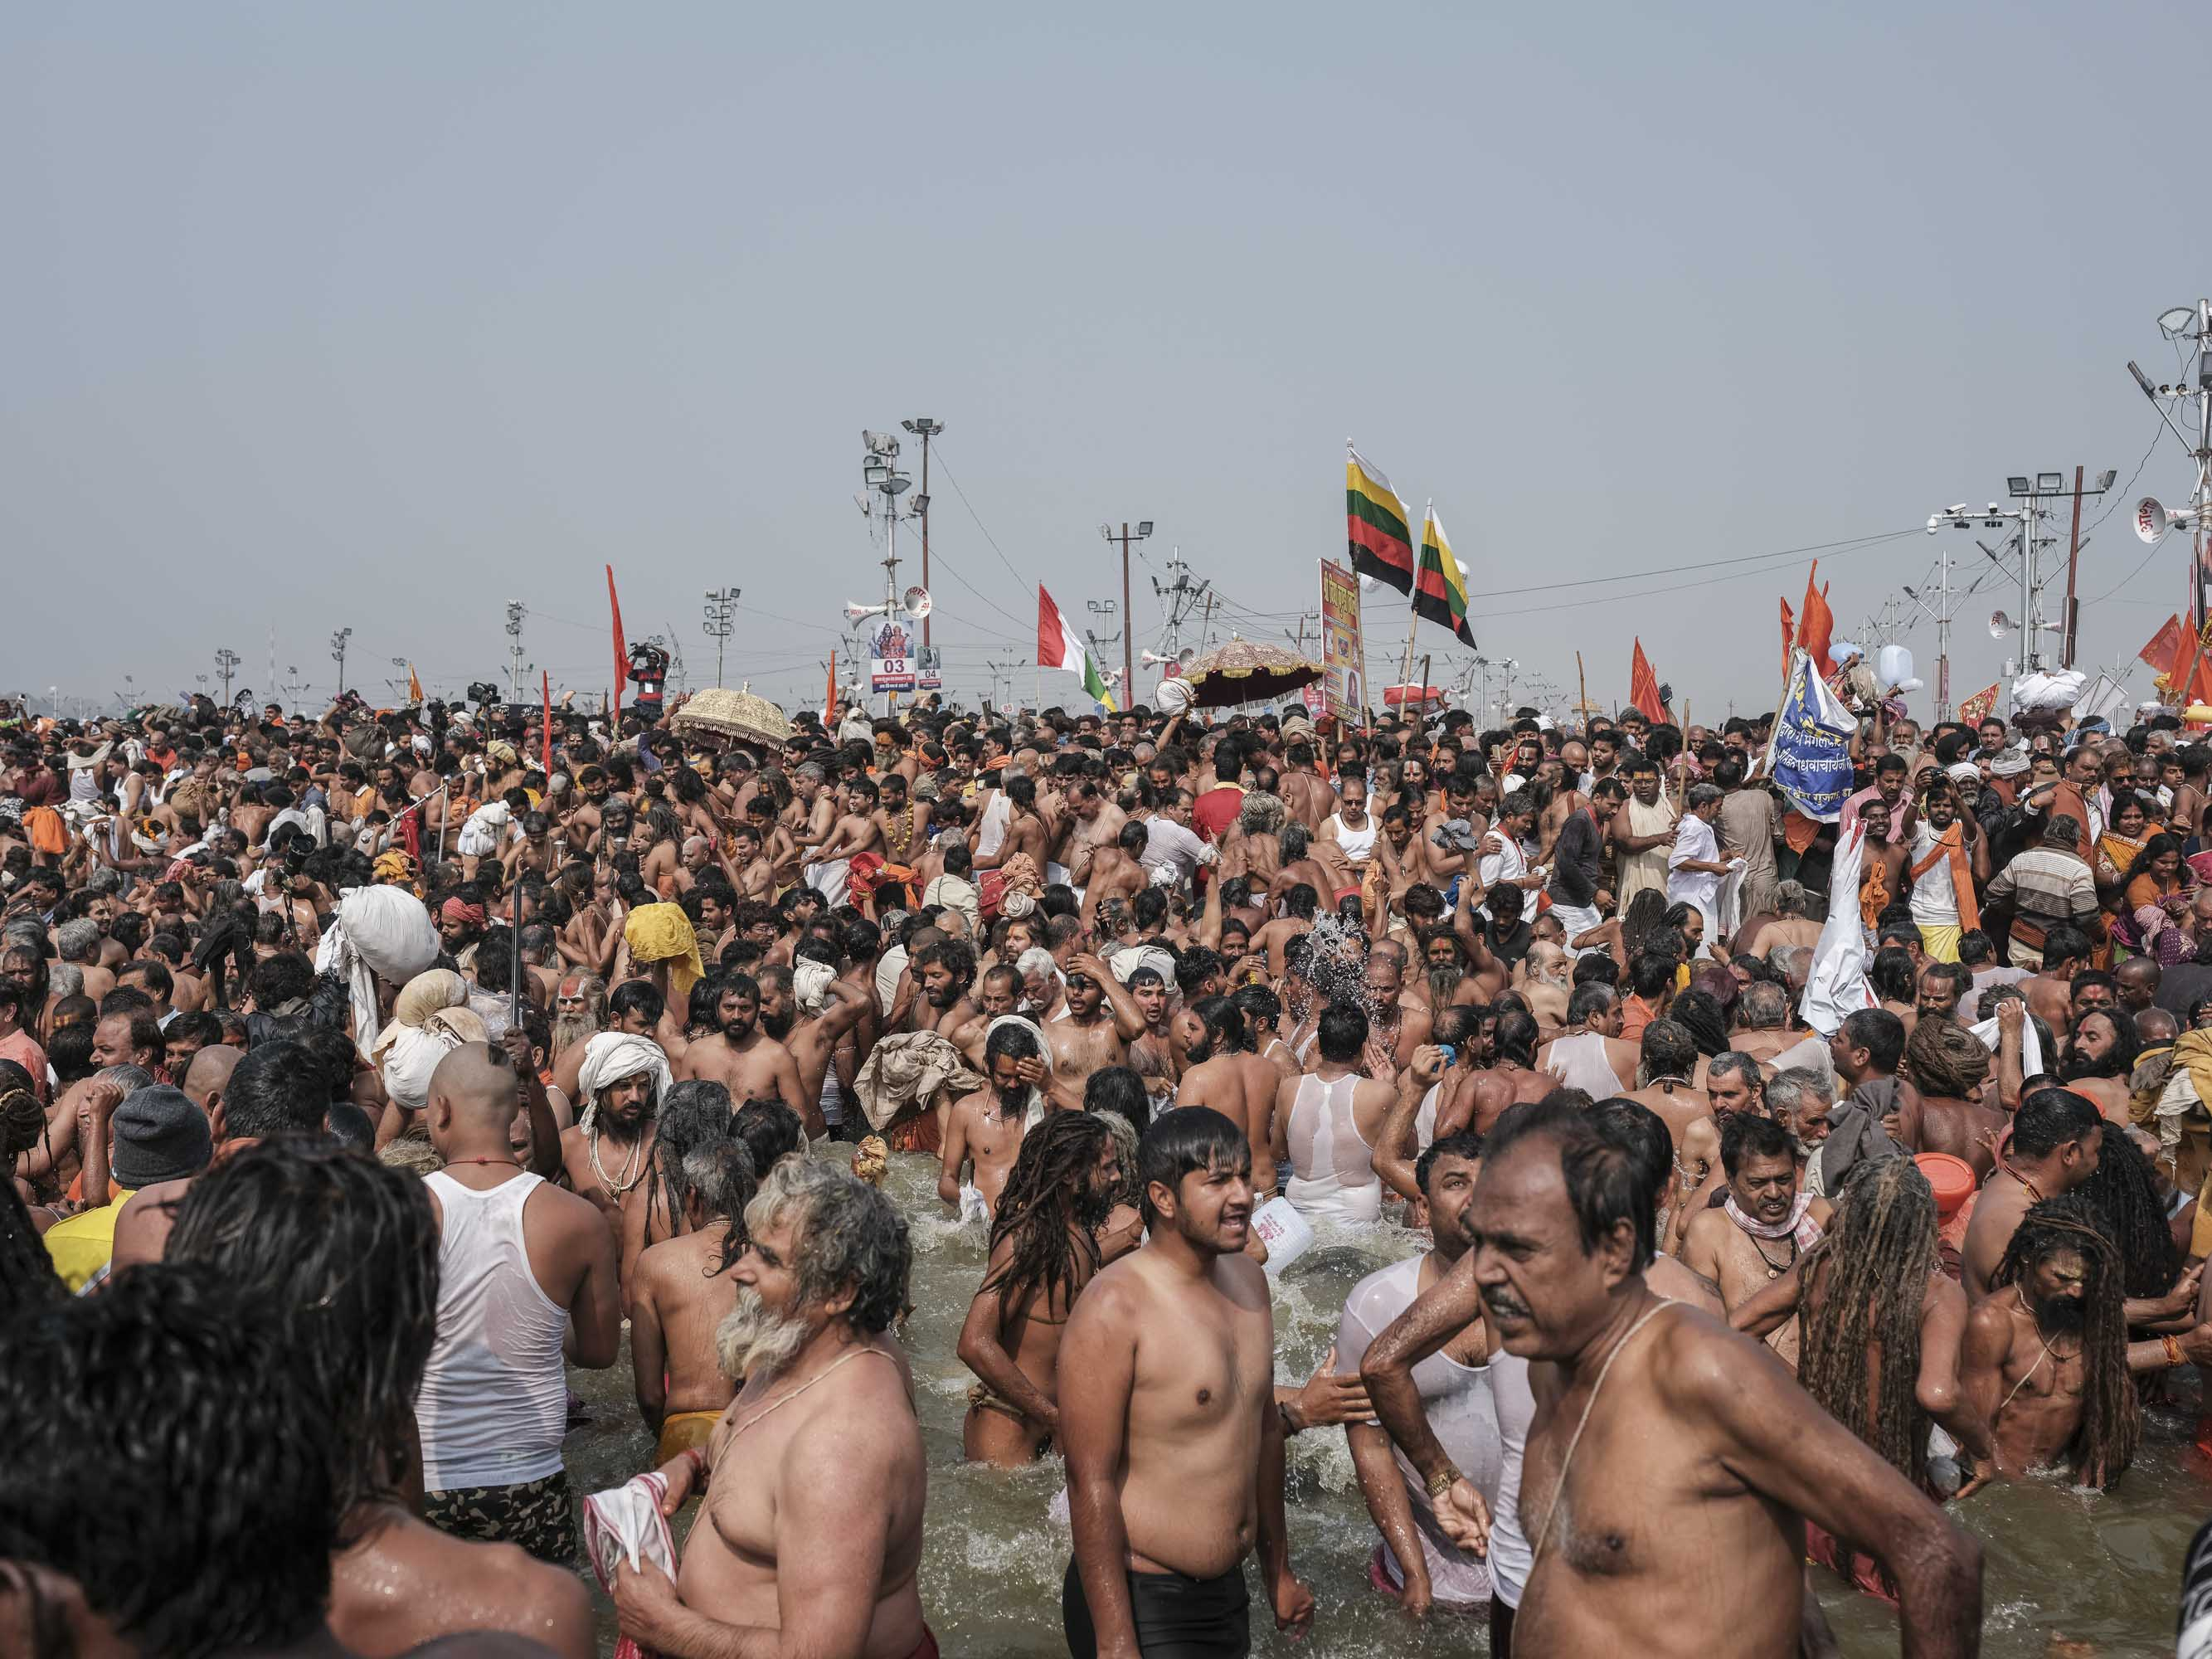 crowd people flag men pilgrims Kumbh mela 2019 India Allahabad Prayagraj Ardh hindu religious Festival event rivers photographer jose jeuland photography